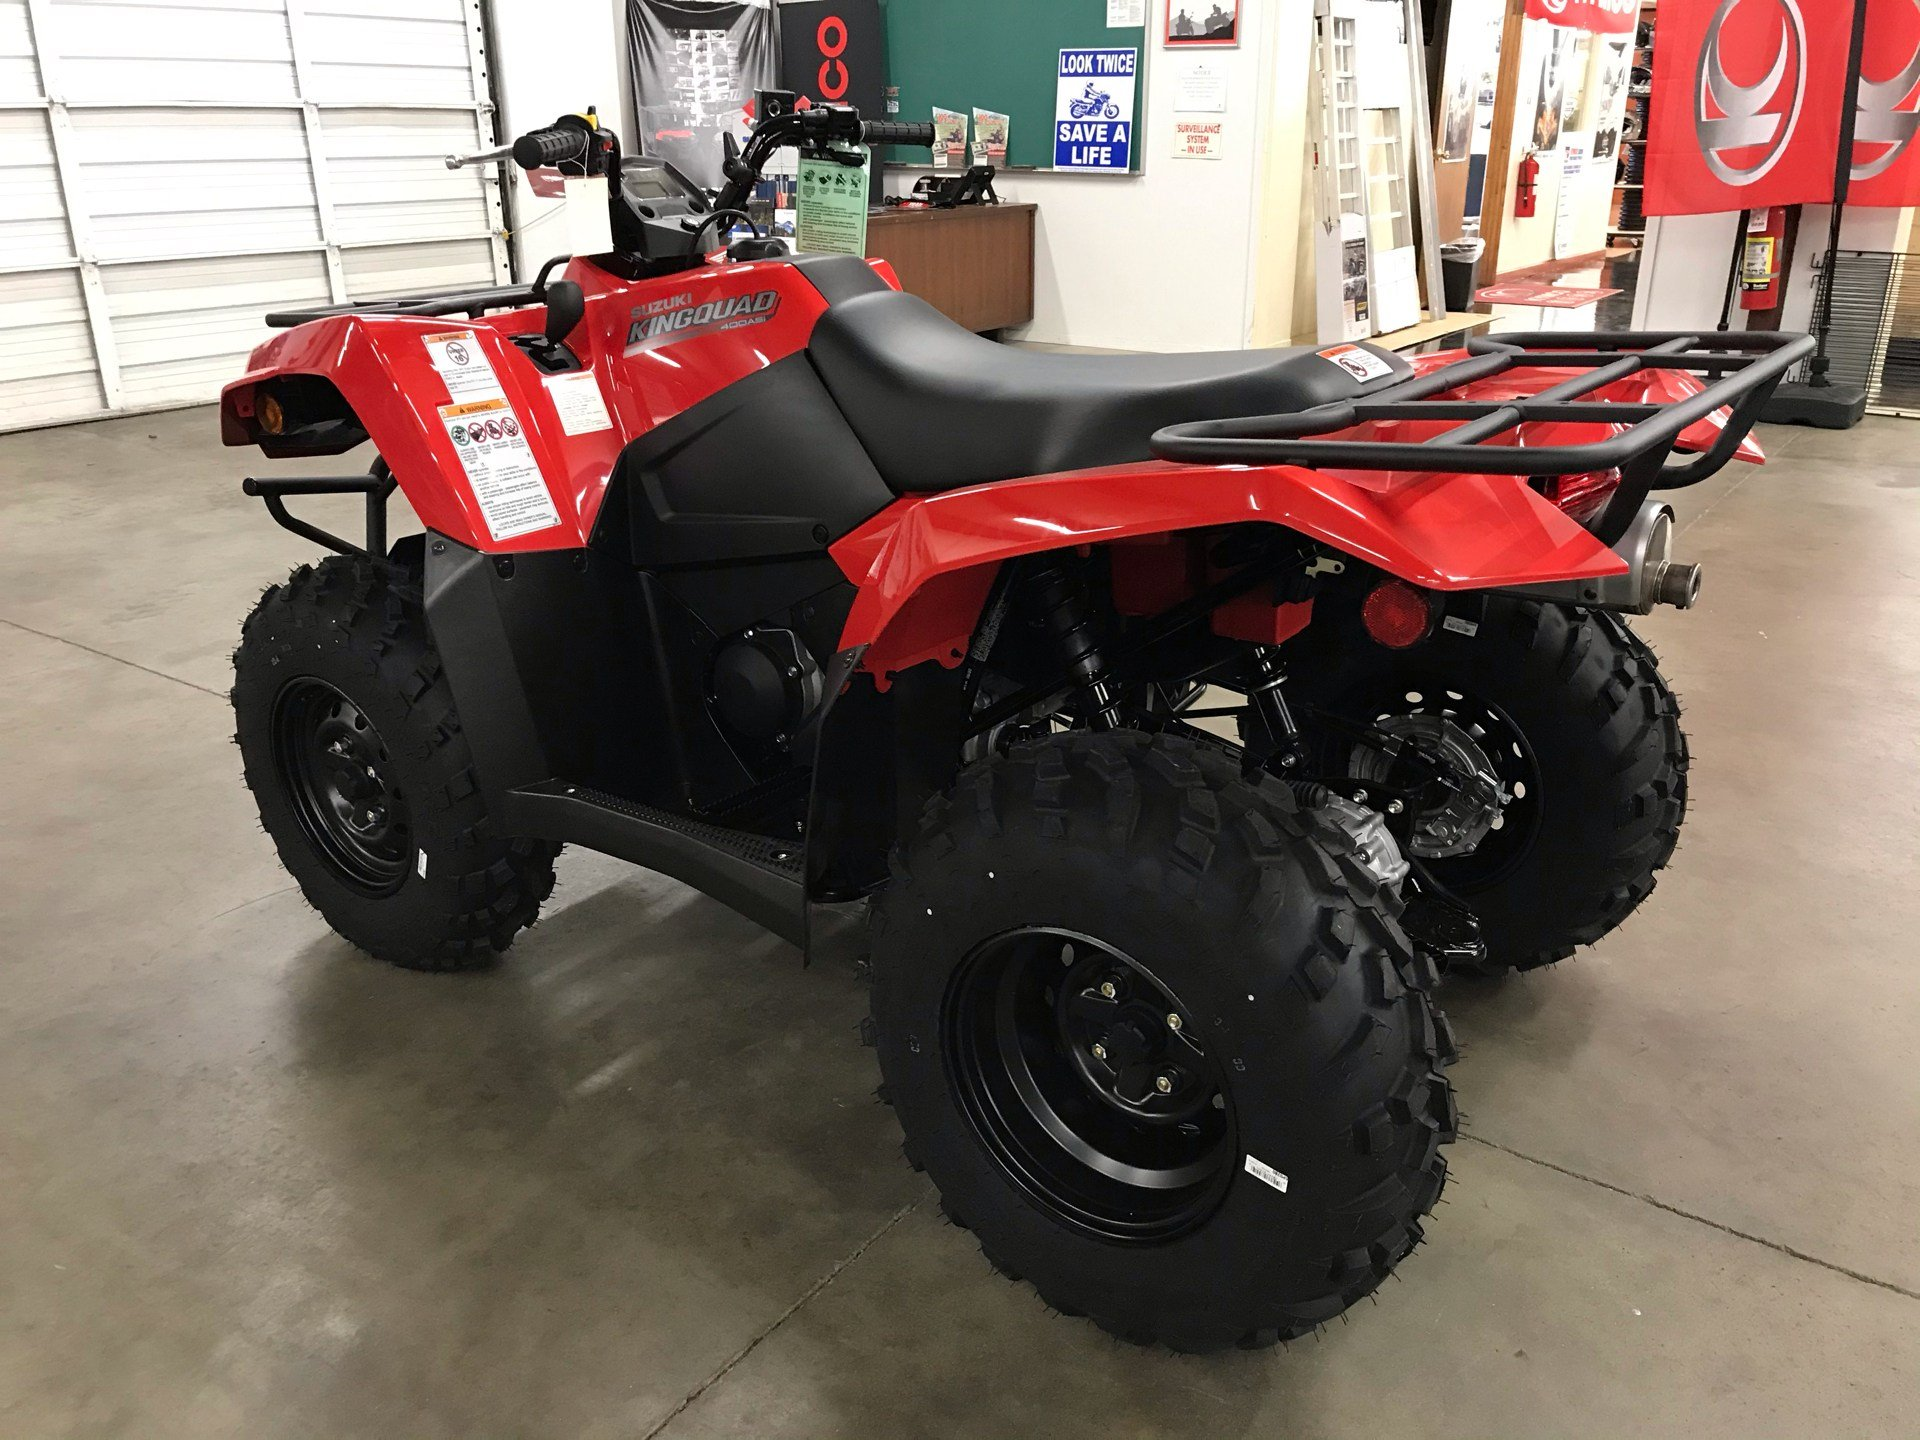 2021 Suzuki KingQuad 400ASi in Sanford, North Carolina - Photo 6